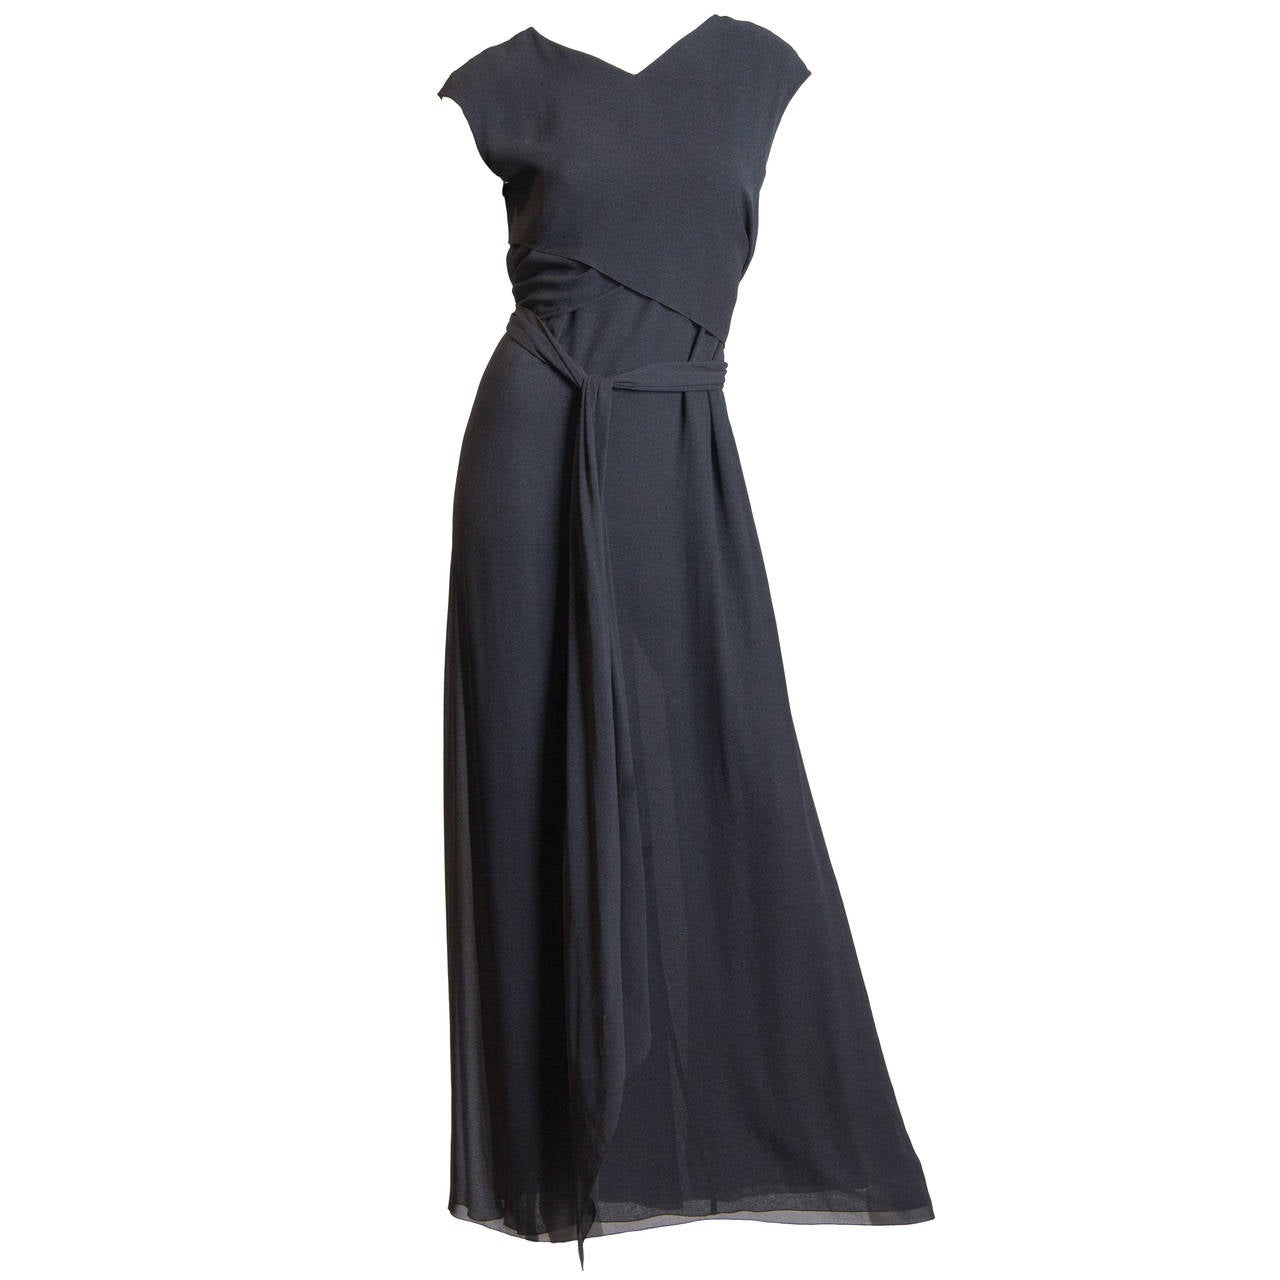 Slate Grey Crepe Dress from Chanel